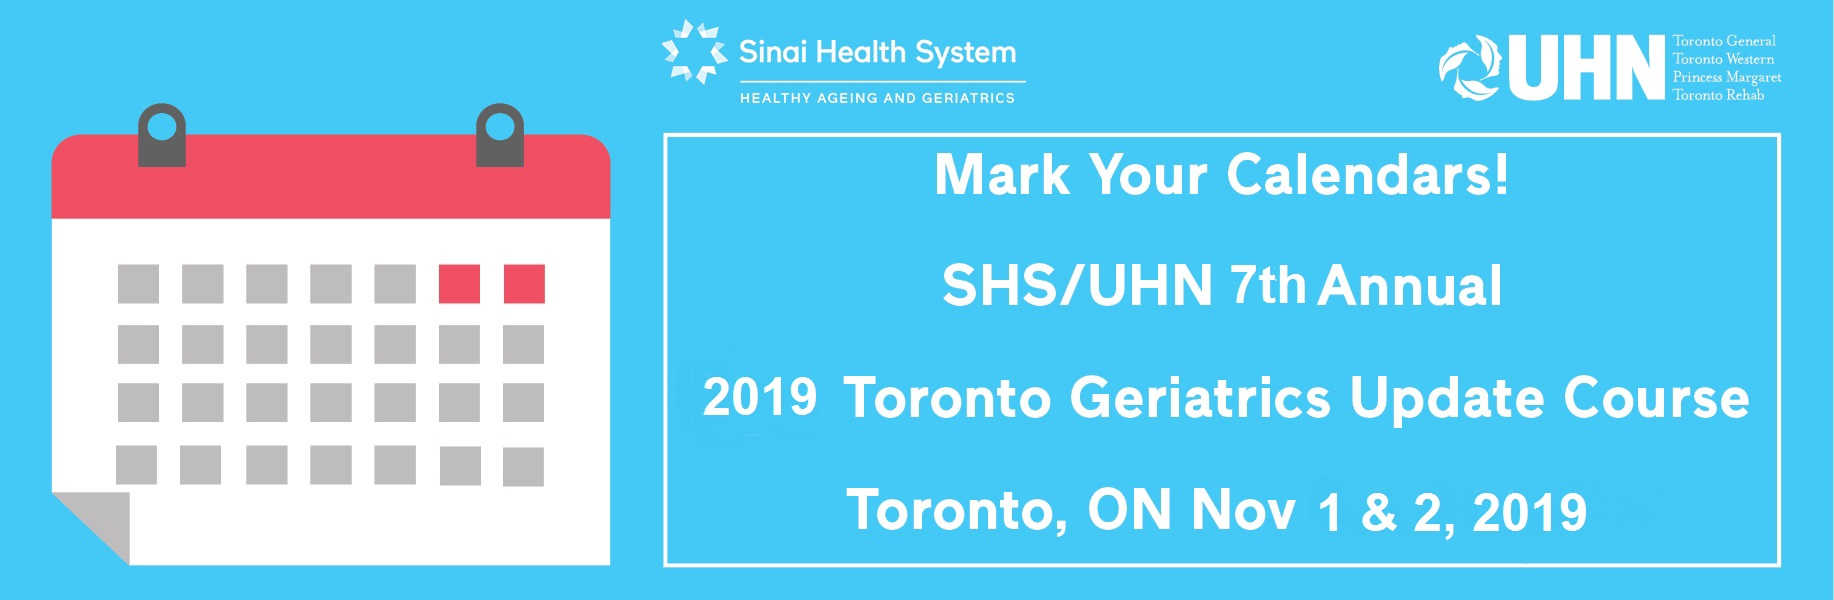 Mark the date 2019 Toronto Geriatrics Update Course